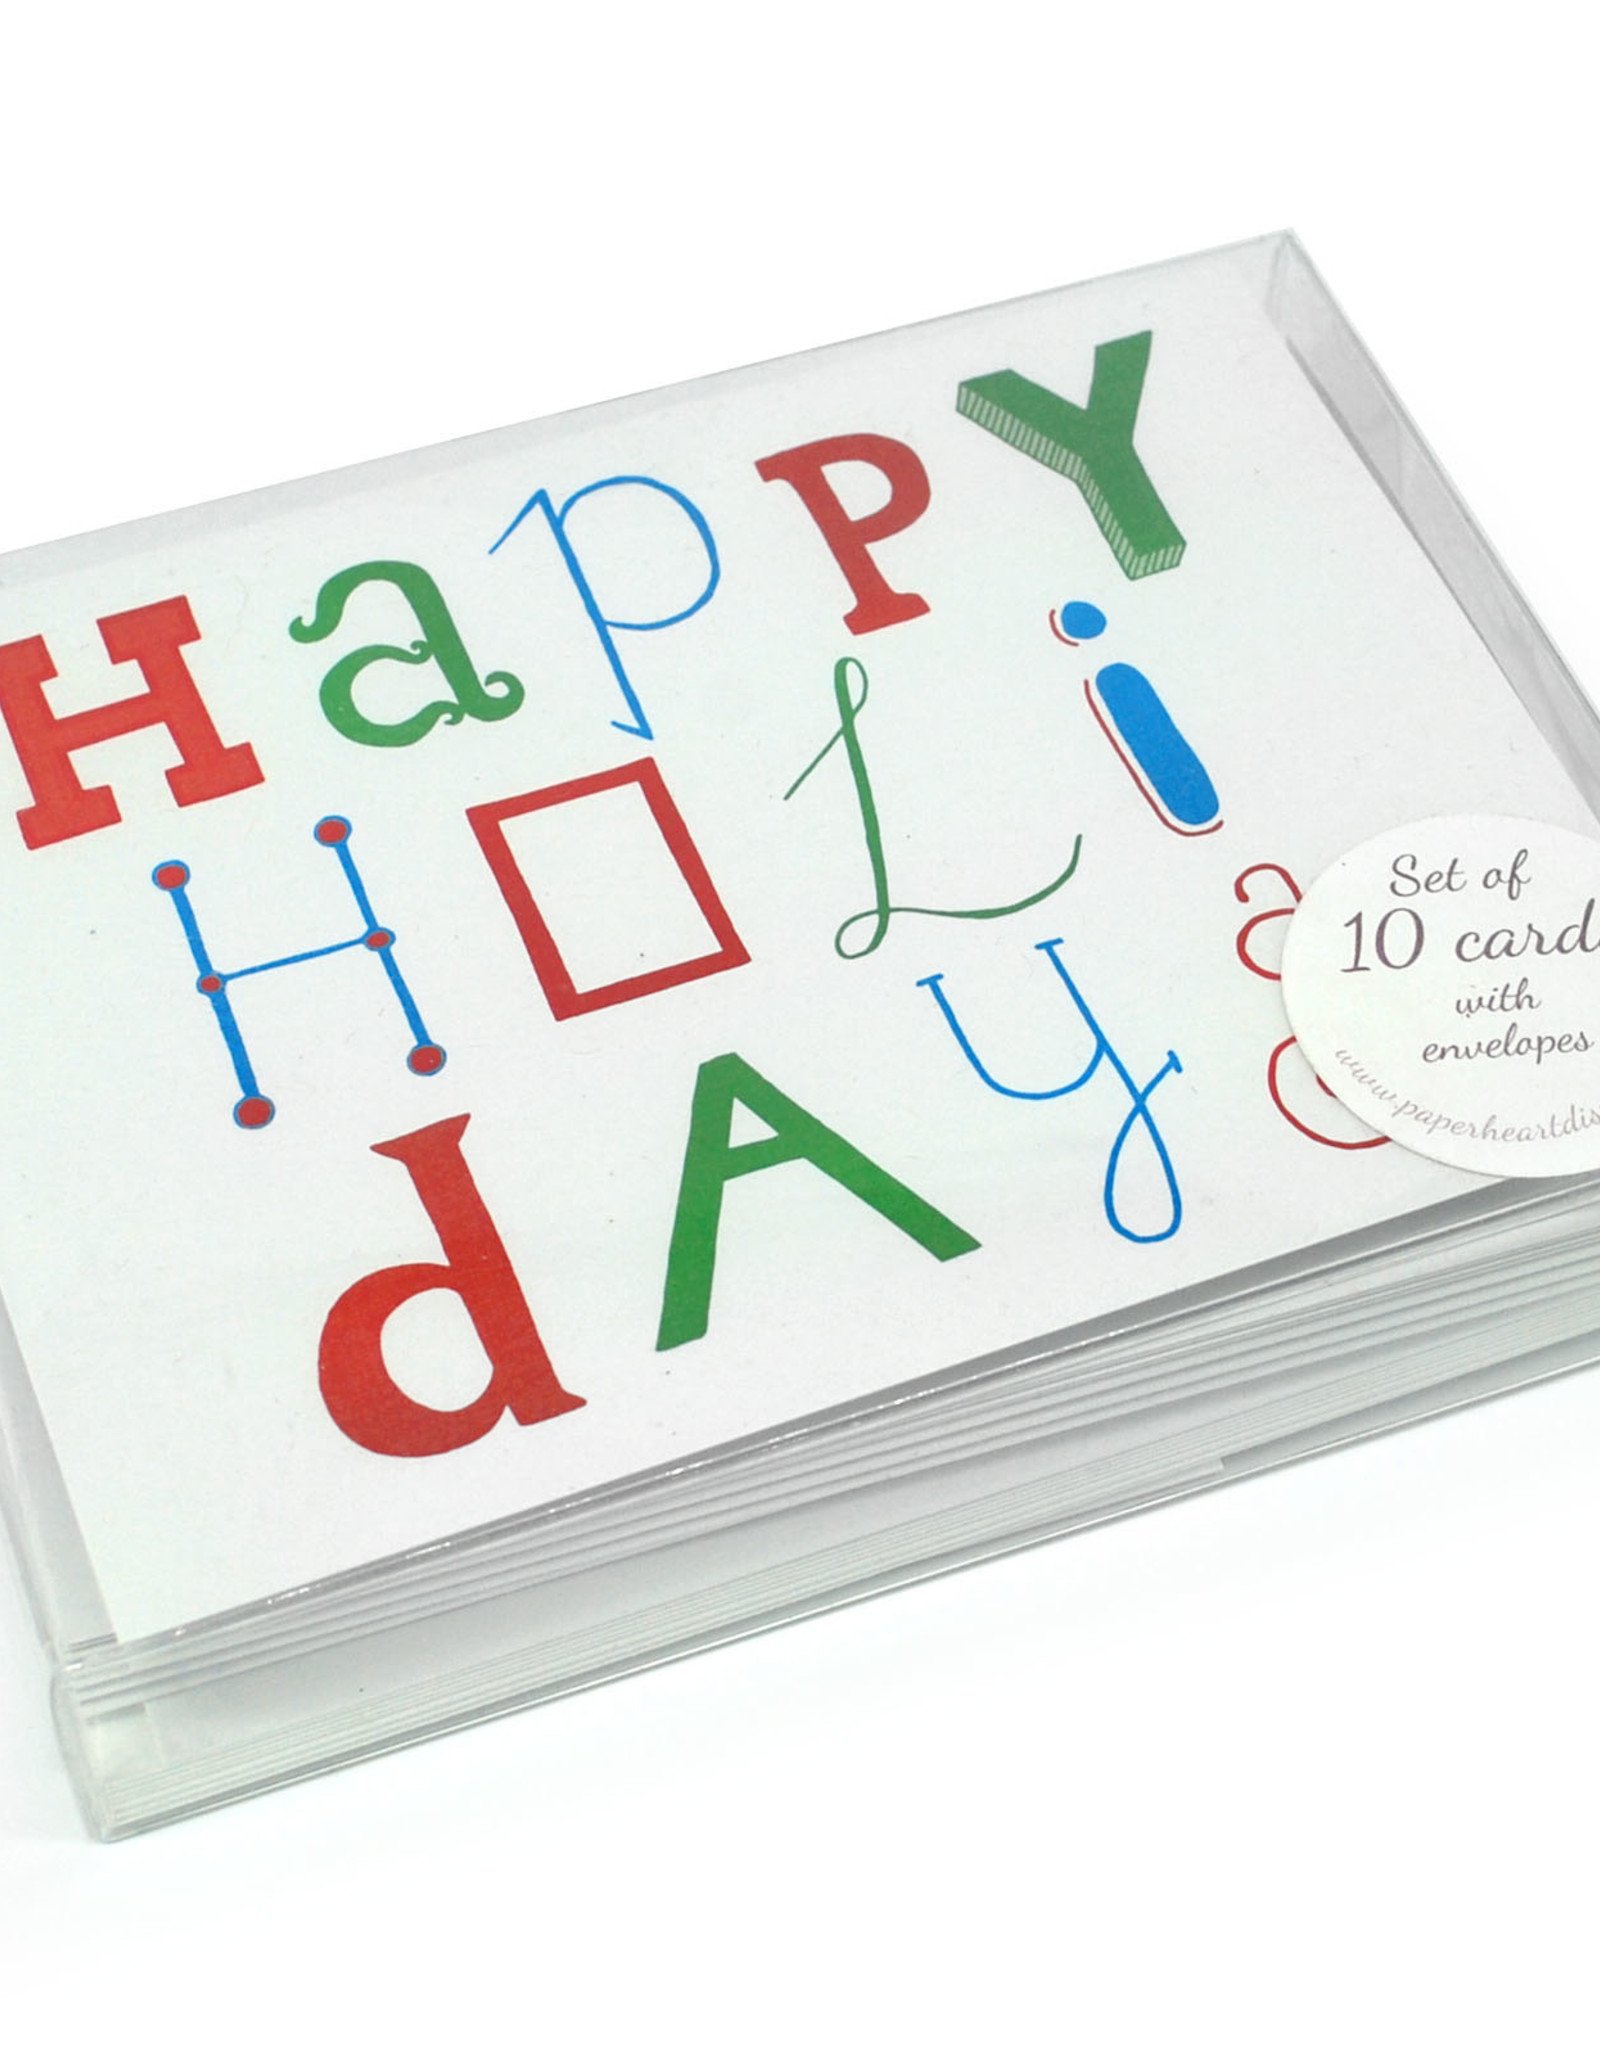 Paper Heart Dispatch Box Set of 10 Happy Holiday Mixed Typography Cards by Jennifer Hines